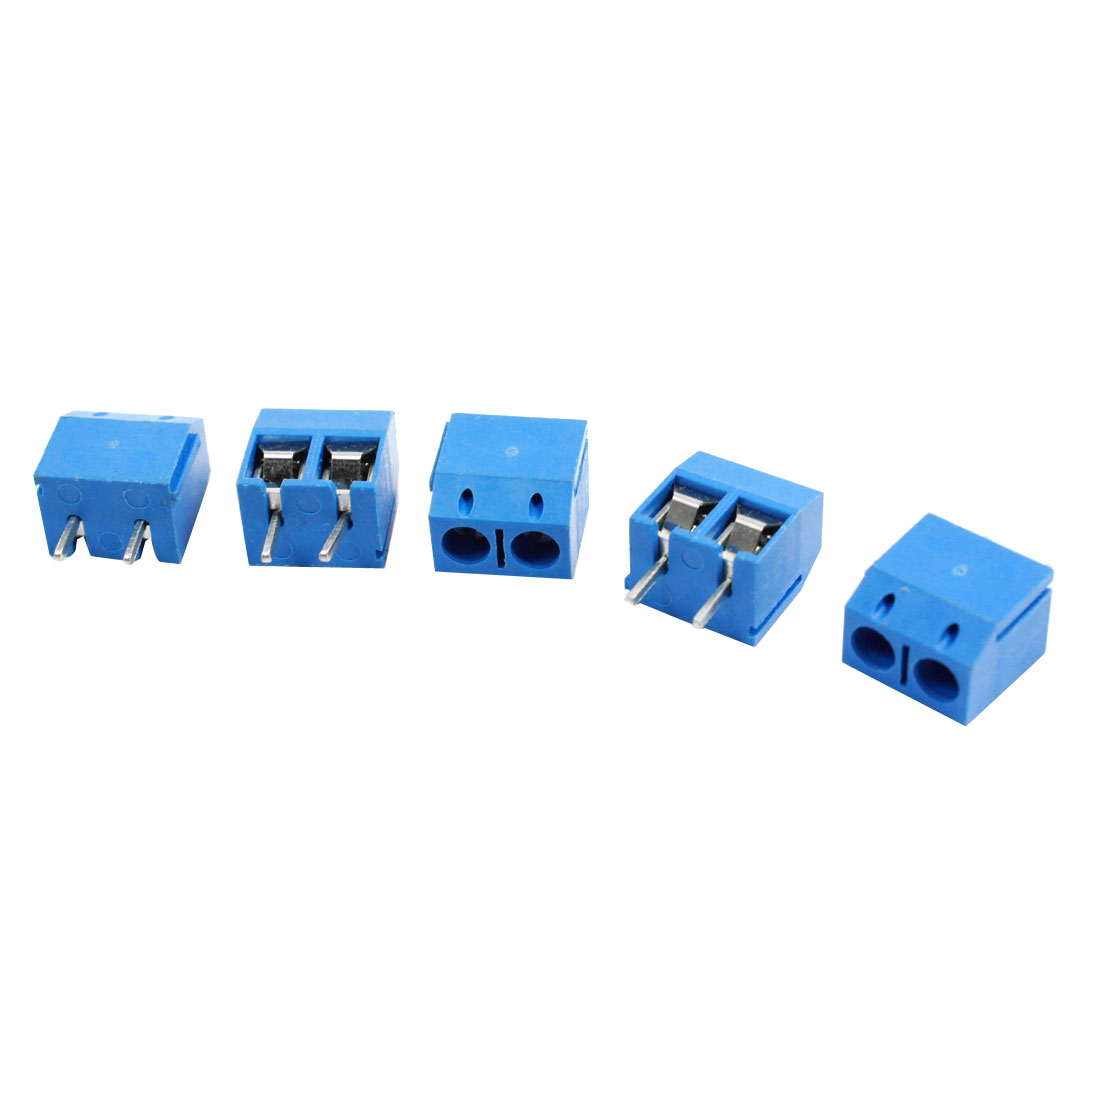 5 Pcs 301-2P 5mm Pitch Screw Terminal AC300V 10A Blue Block Connectors